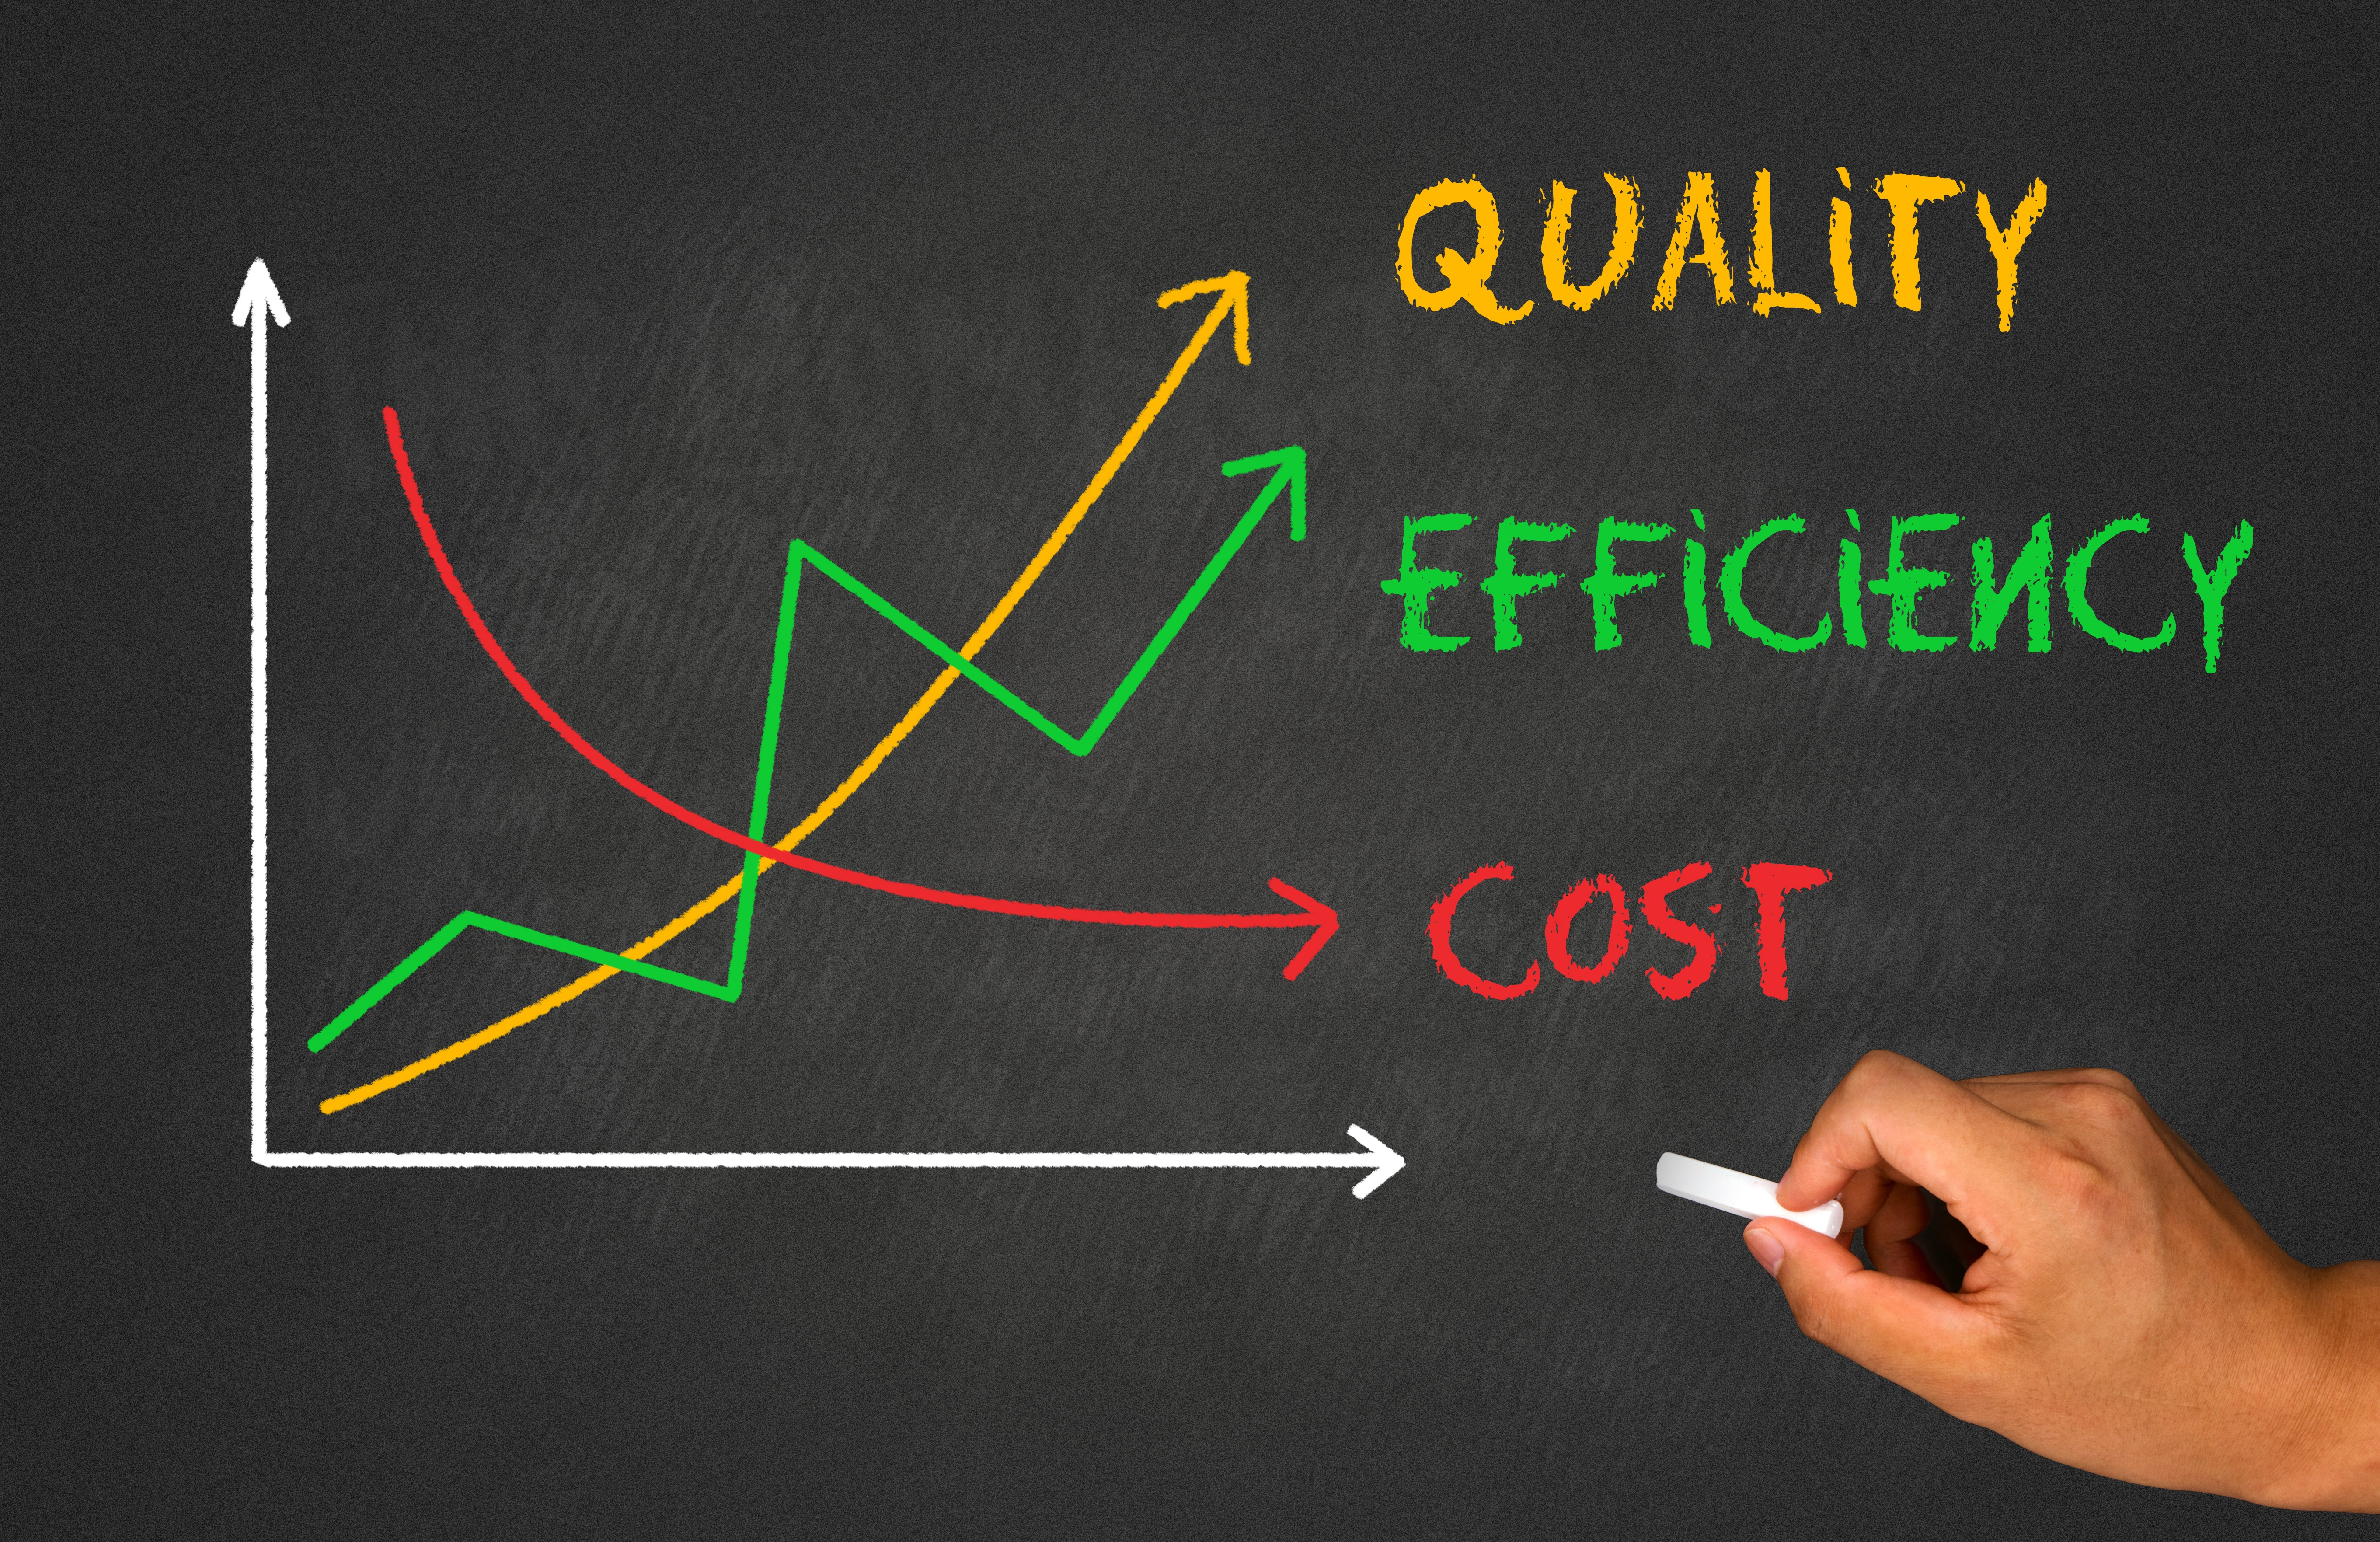 What Really is the Best Way to Achieve Operational Efficiency?